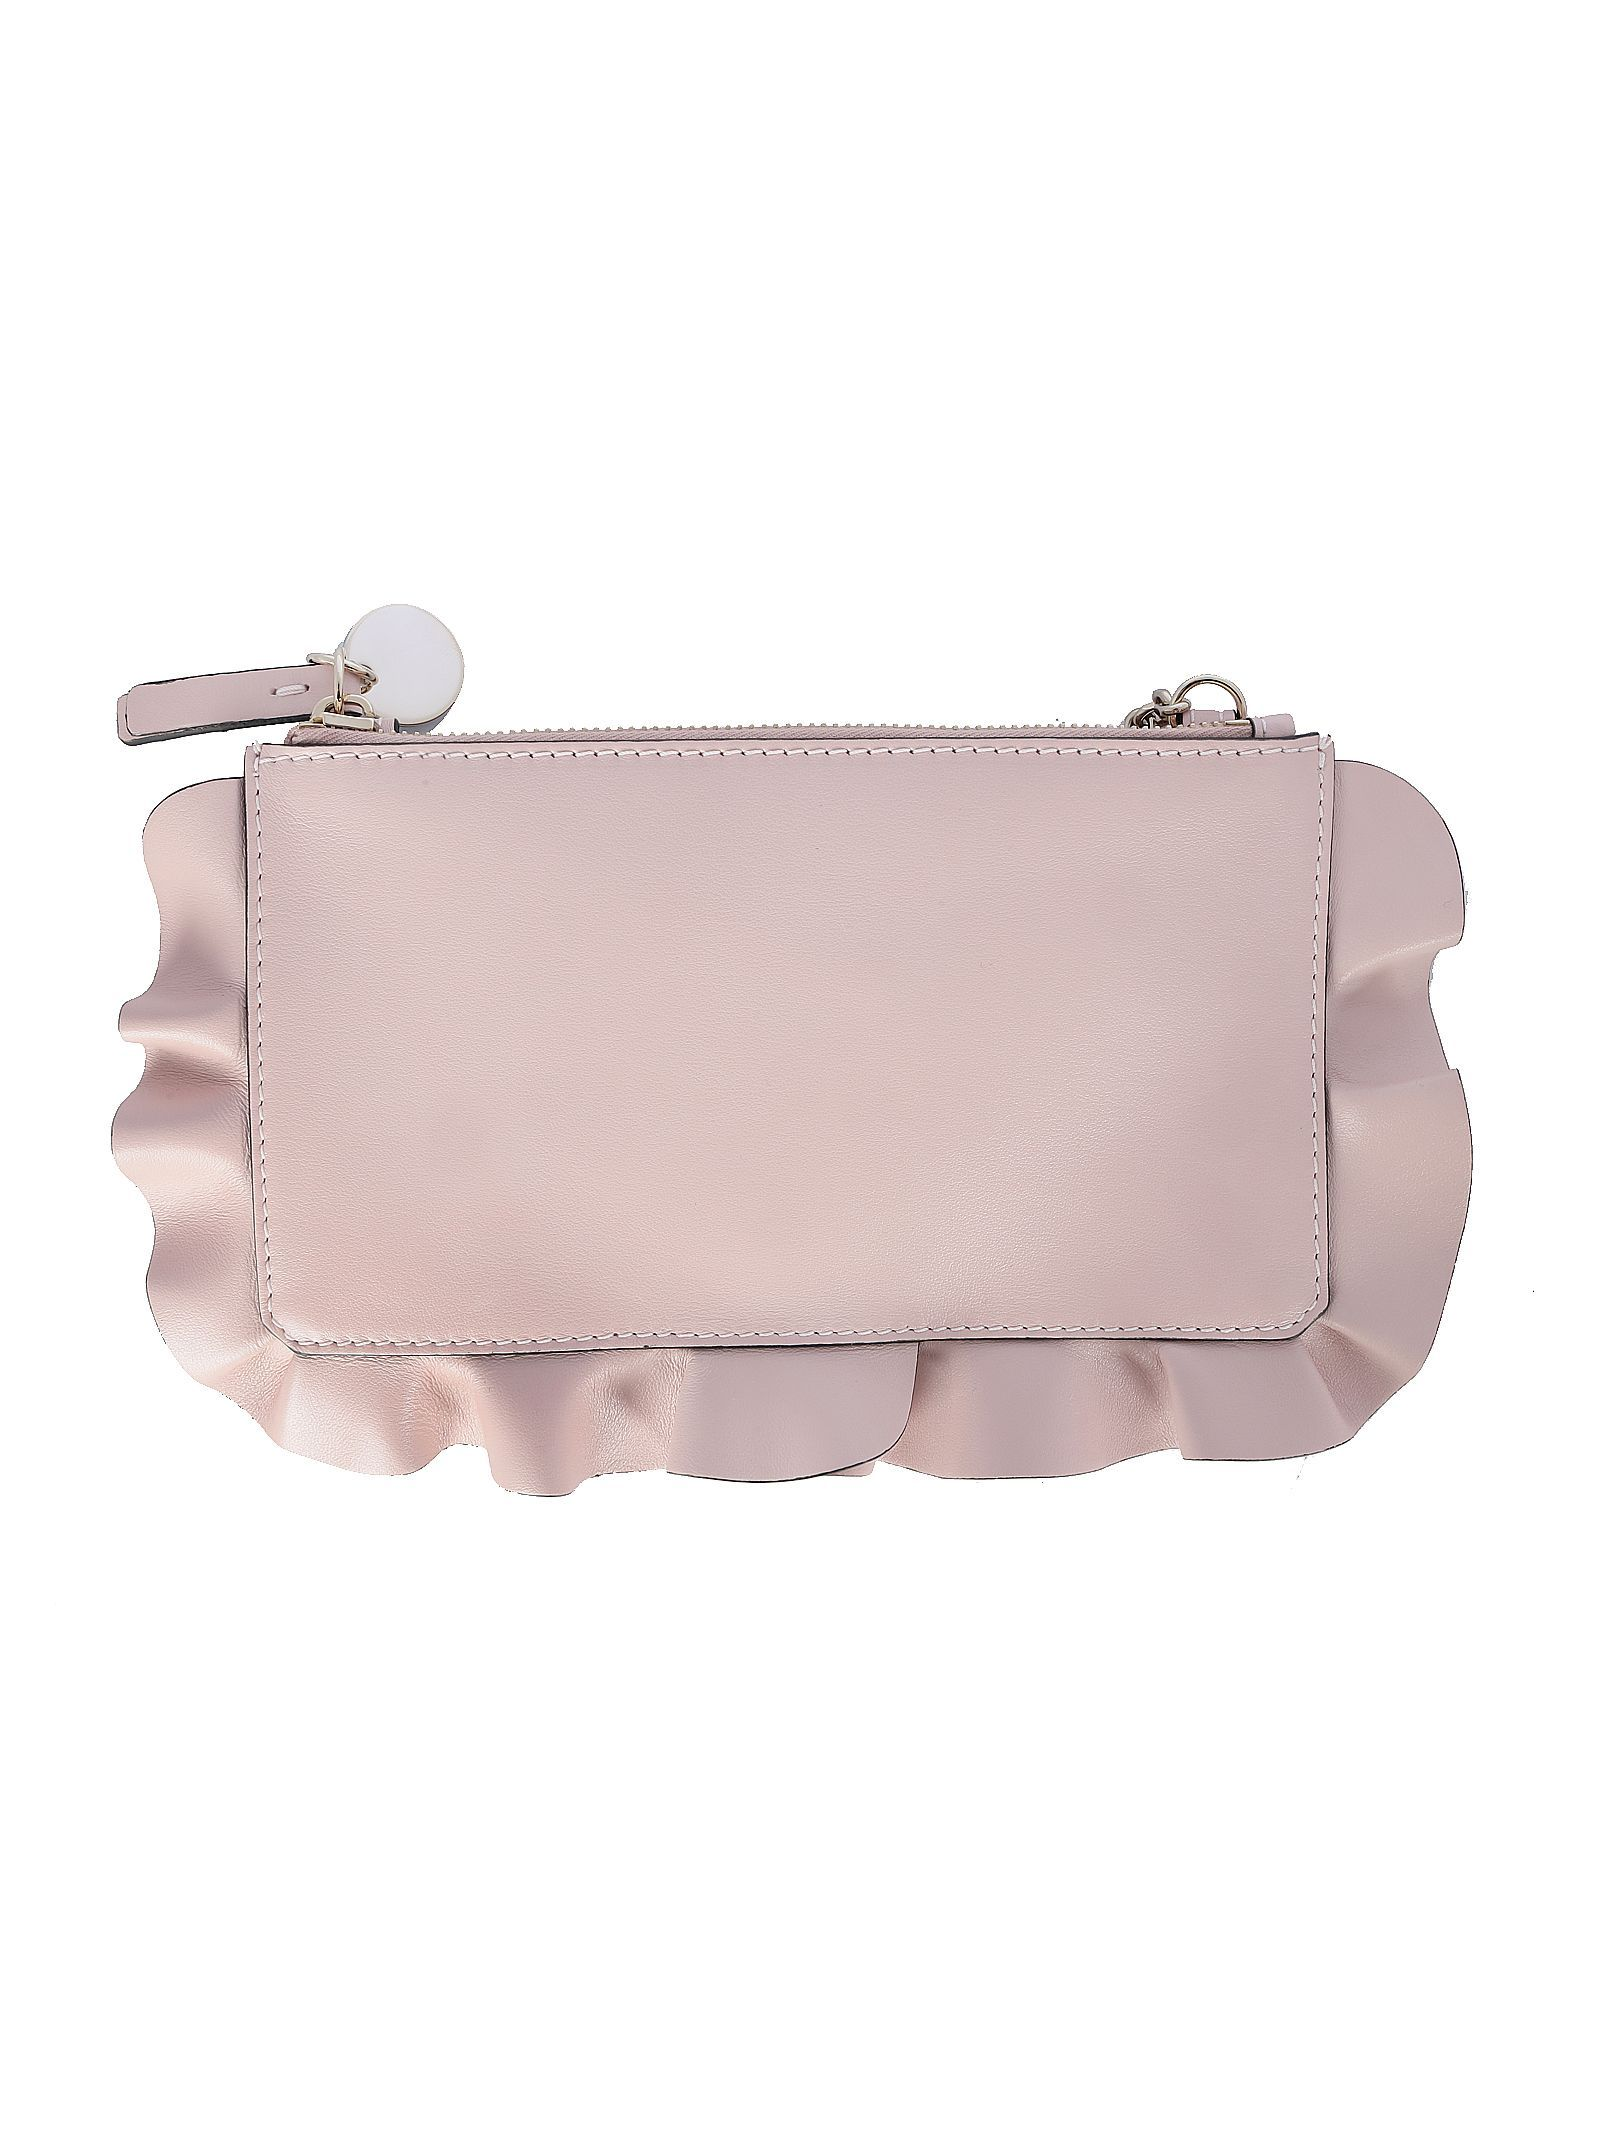 RED VALENTINO WOMEN'S TQ0P0A52MENN17 PINK LEATHER POUCH